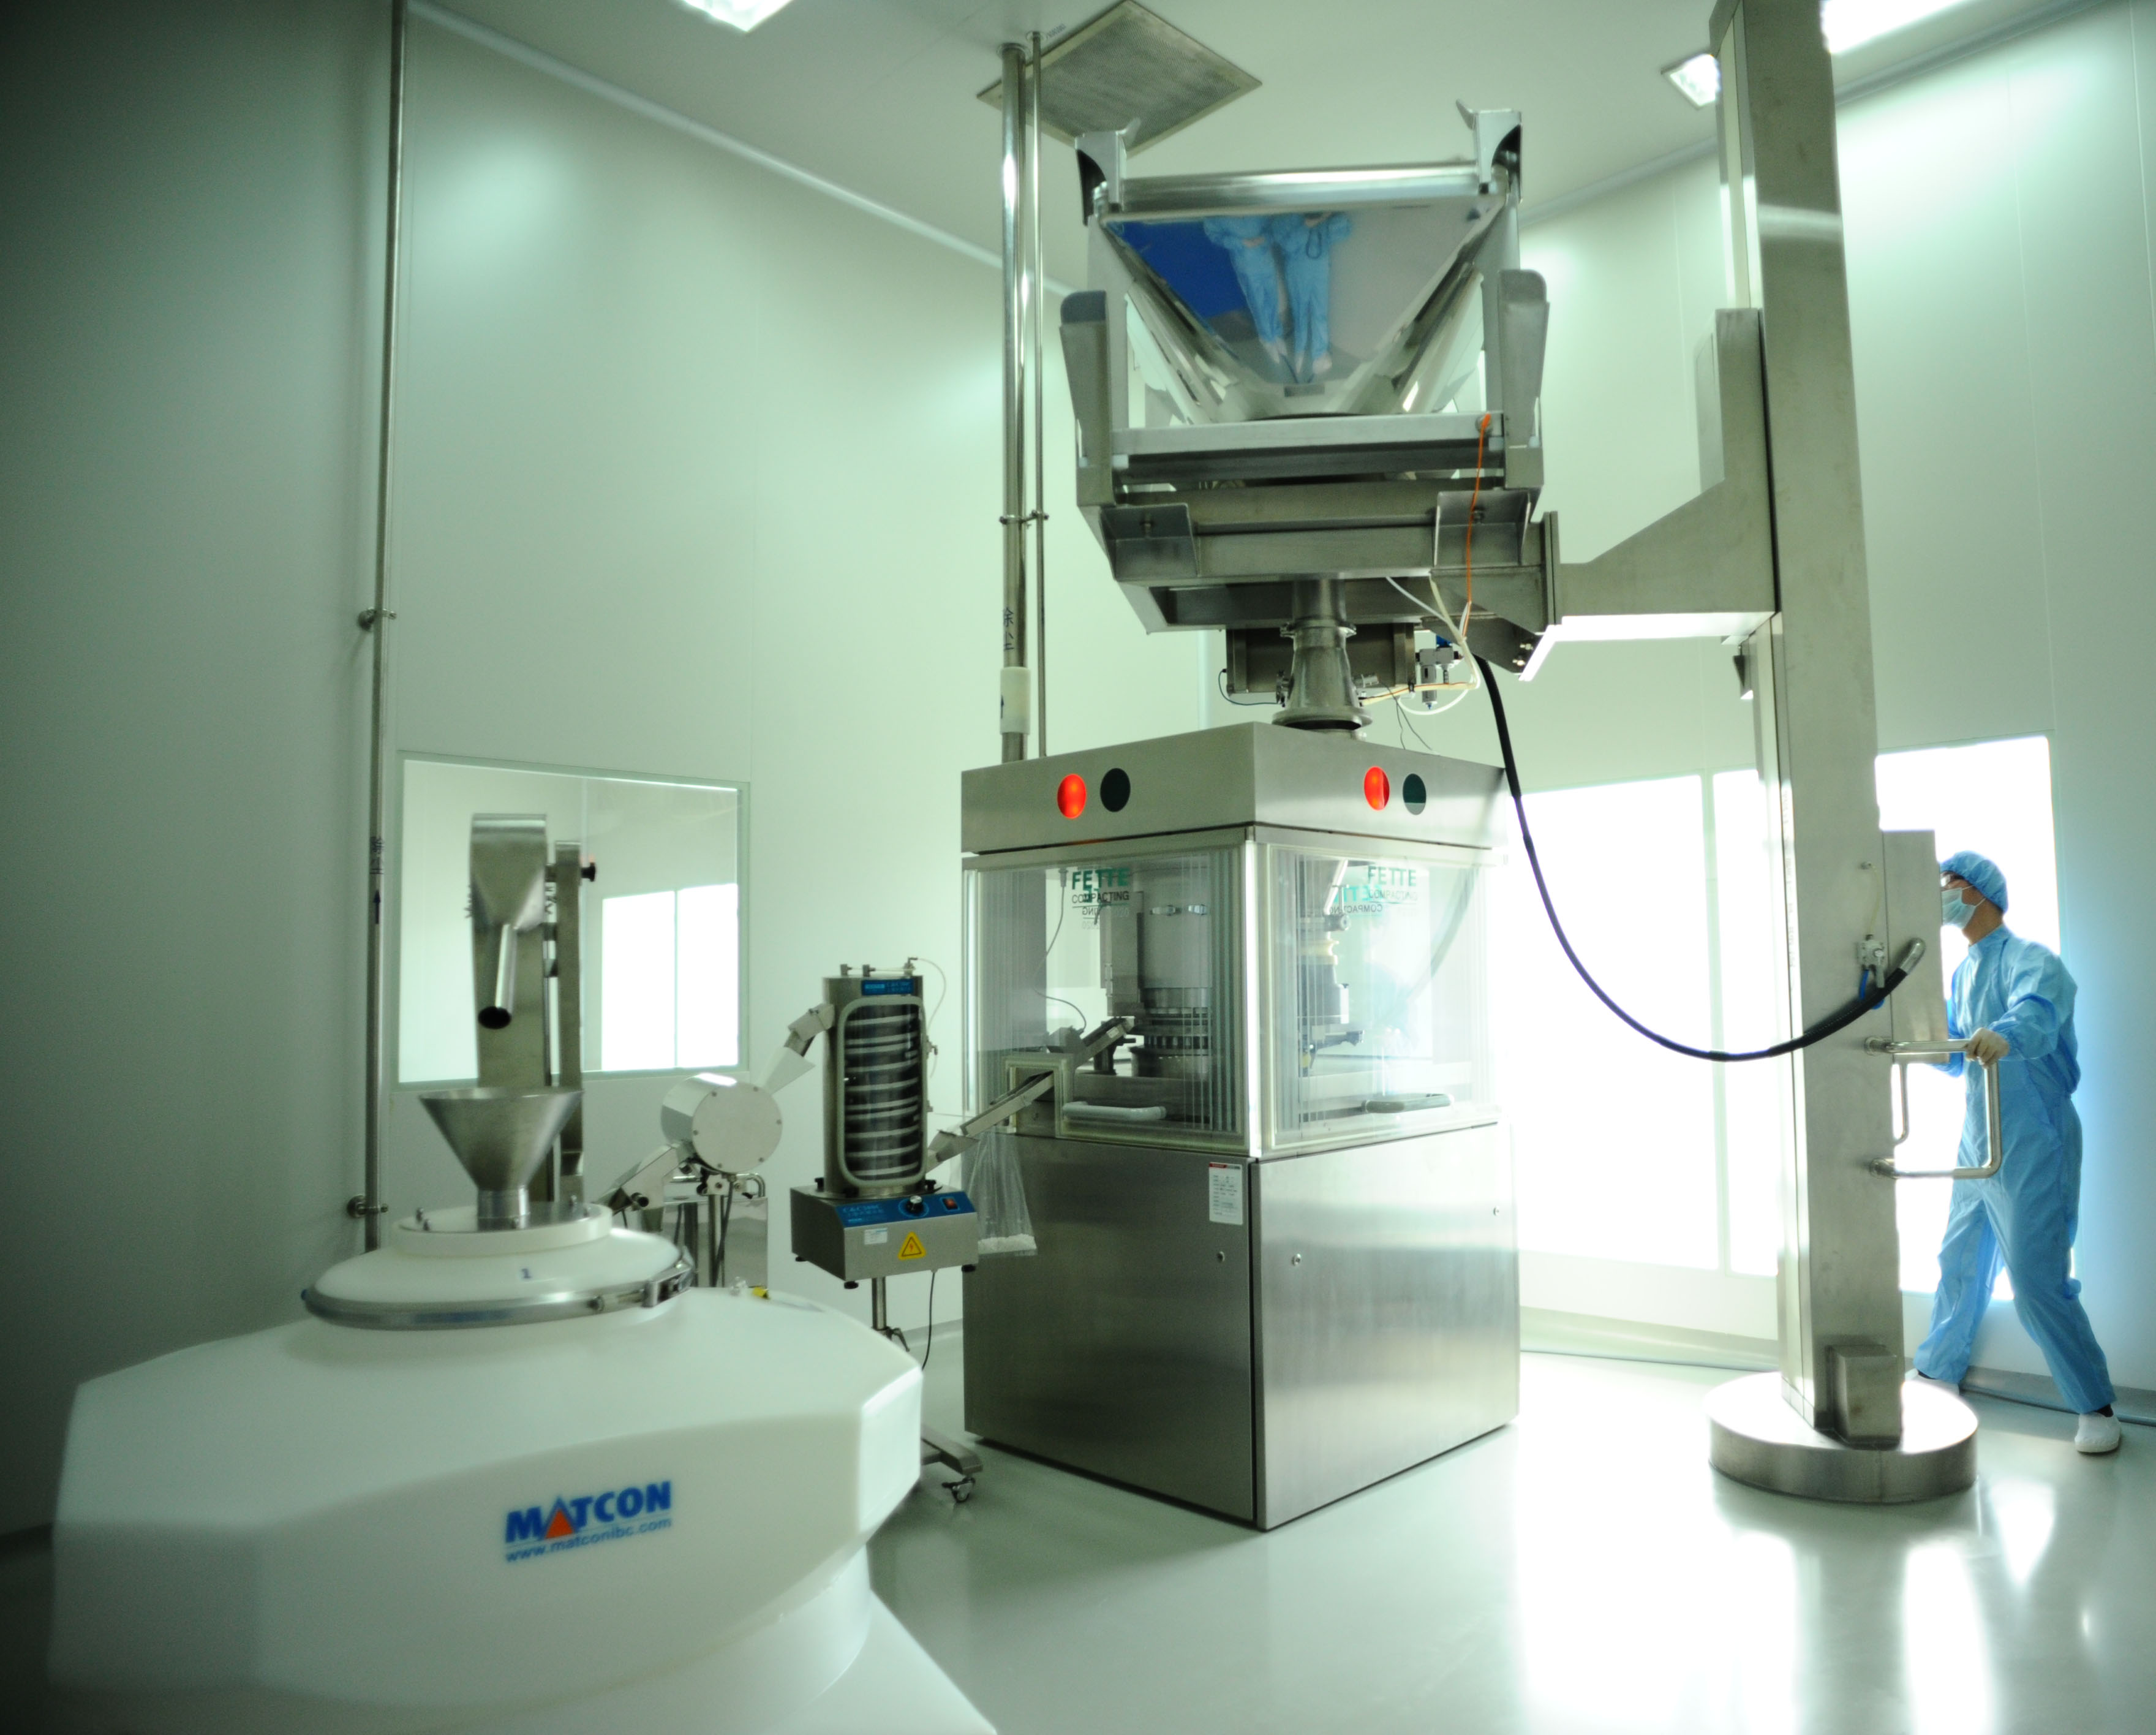 pillar lift being used in a pharmaceutical facility